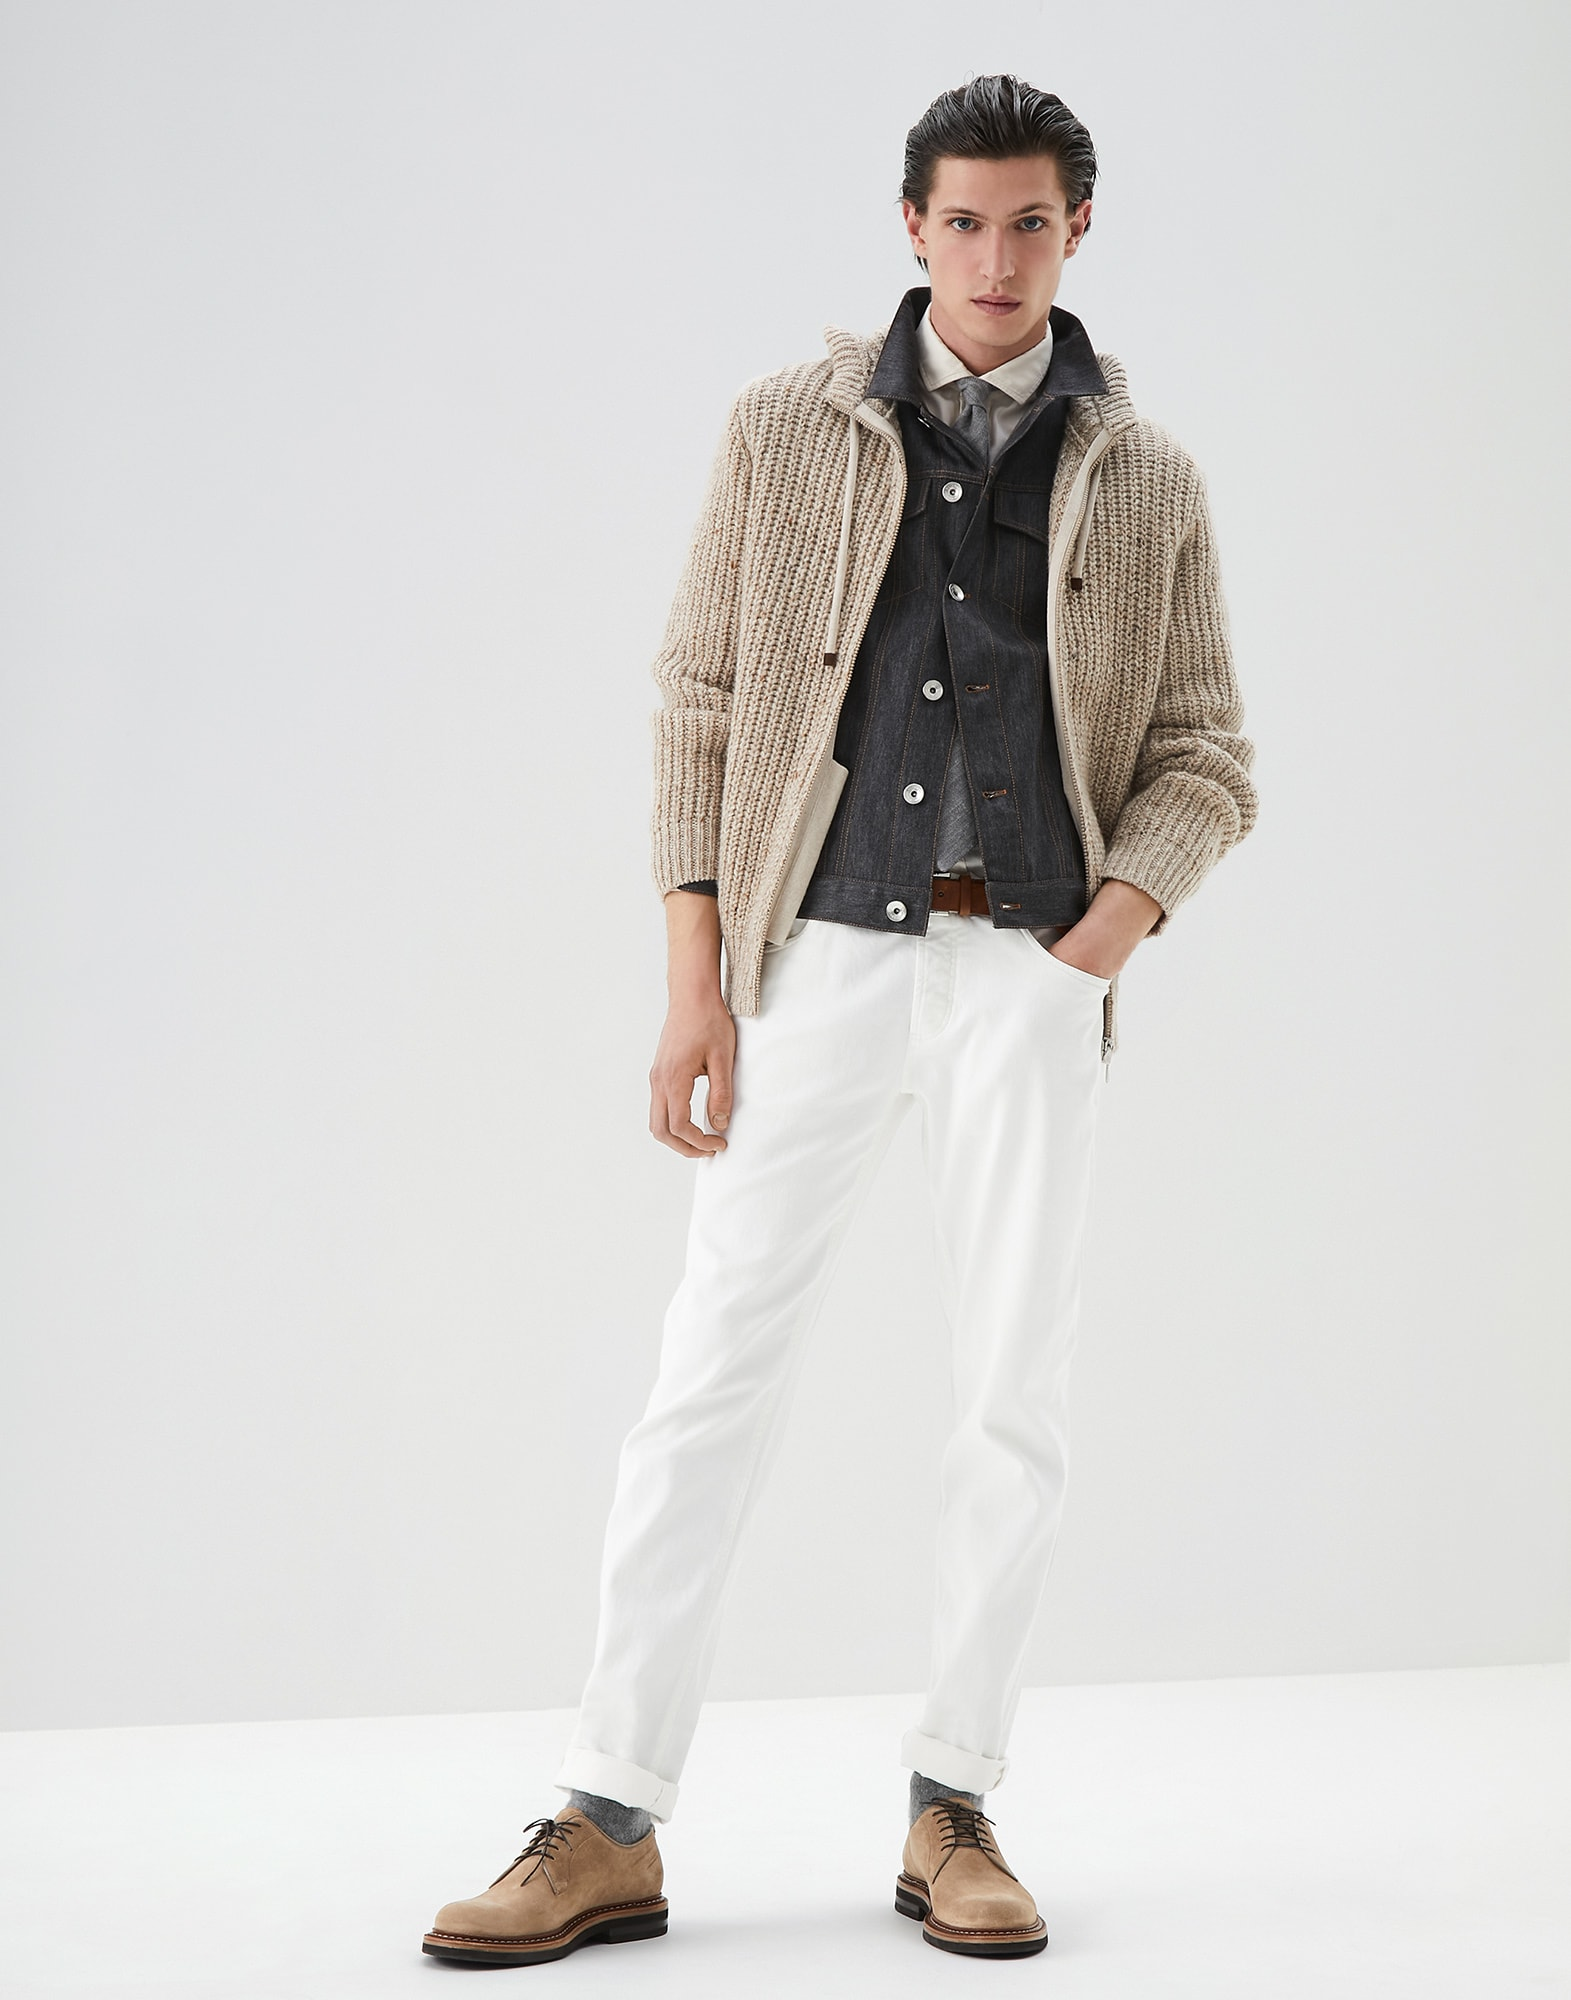 French Collar Shirt Off-White Man 4 - Brunello Cucinelli